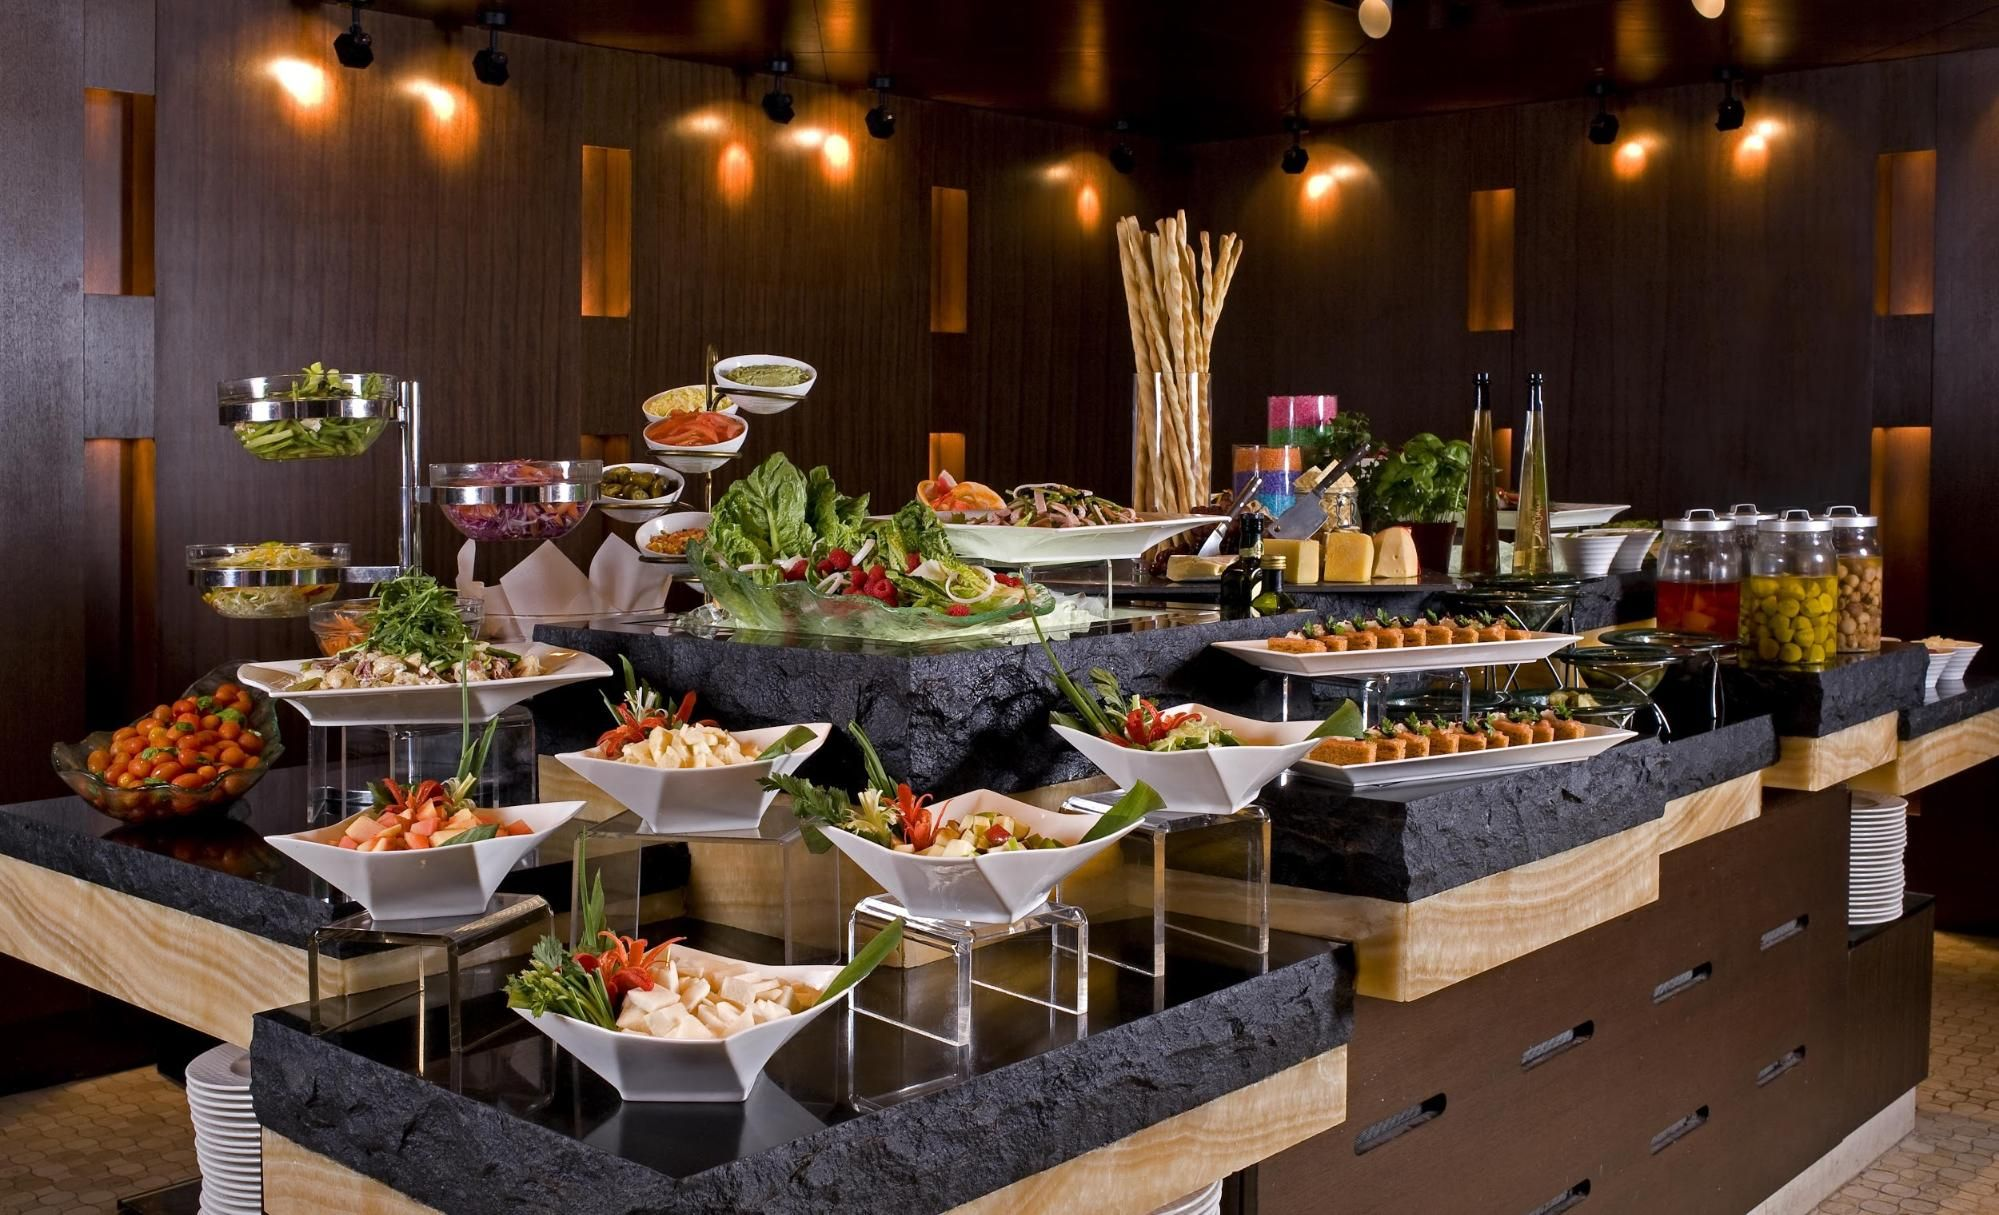 Buffet Cuisine Design Pin By Maha Pepper On New All Day Dining Pinterest